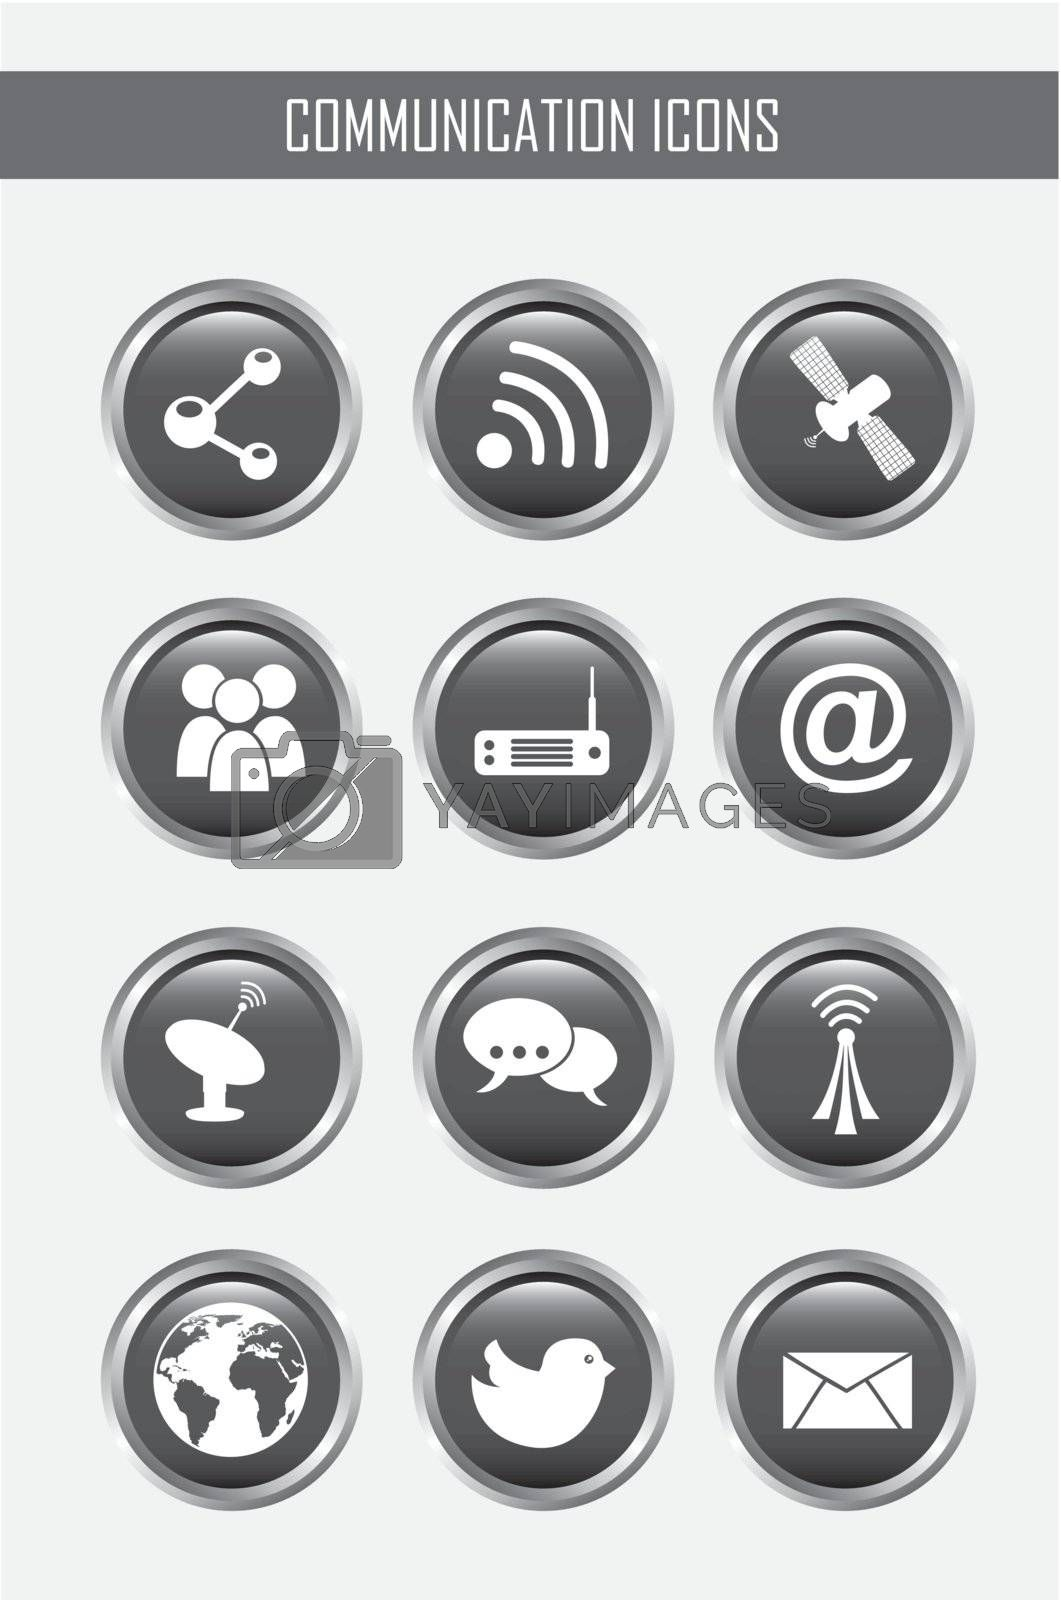 communication icons over gray backgroud. vector illustration